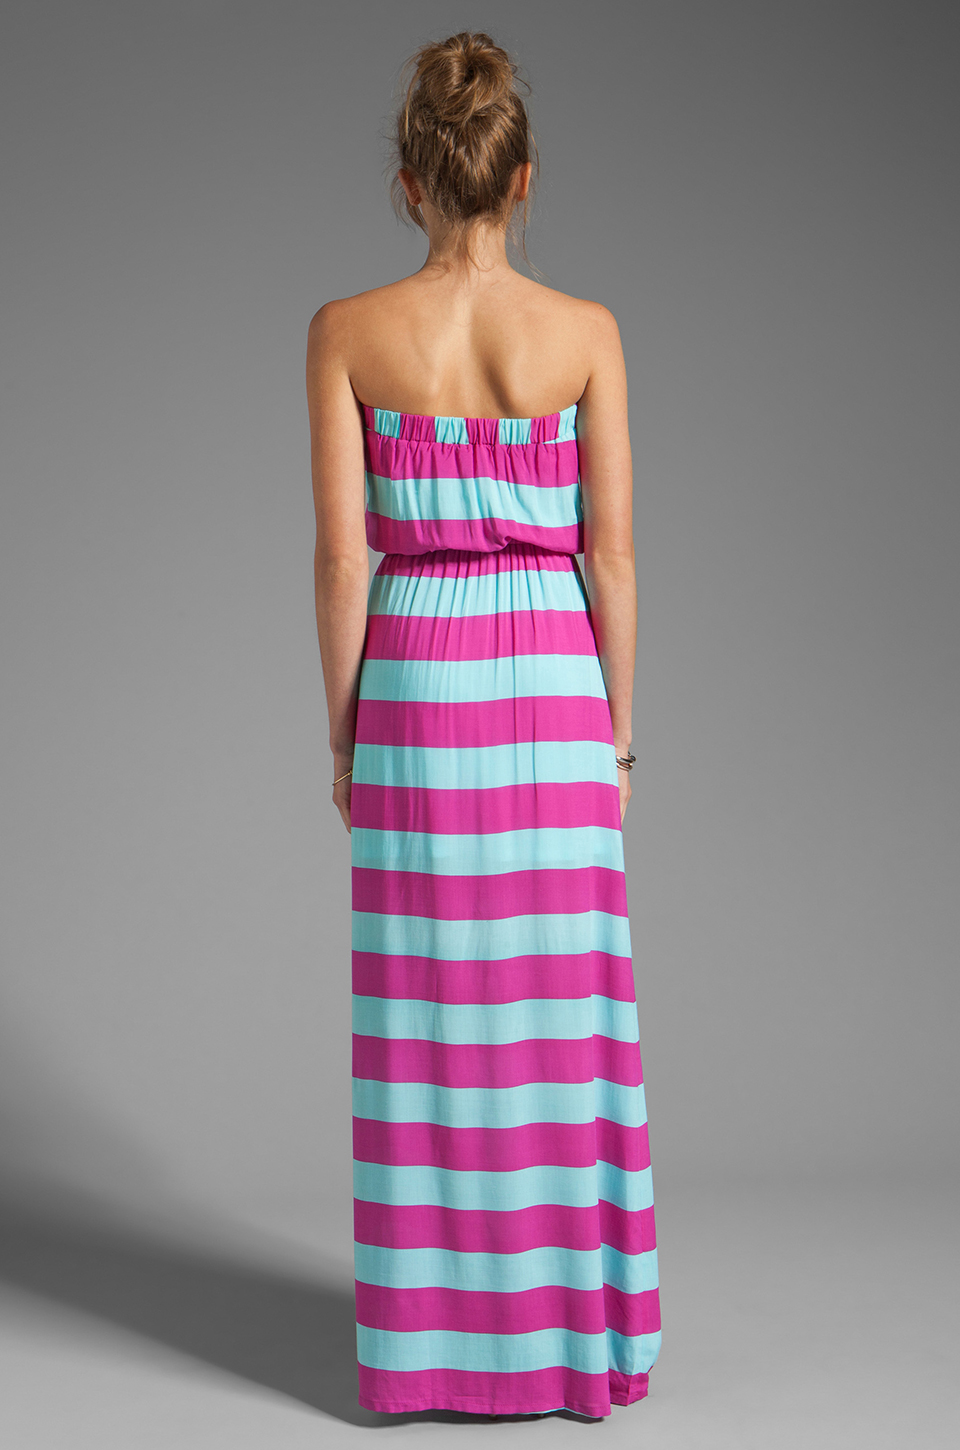 Splendid Magnolia Stripe Maxi Dress in Waterfall/Plum